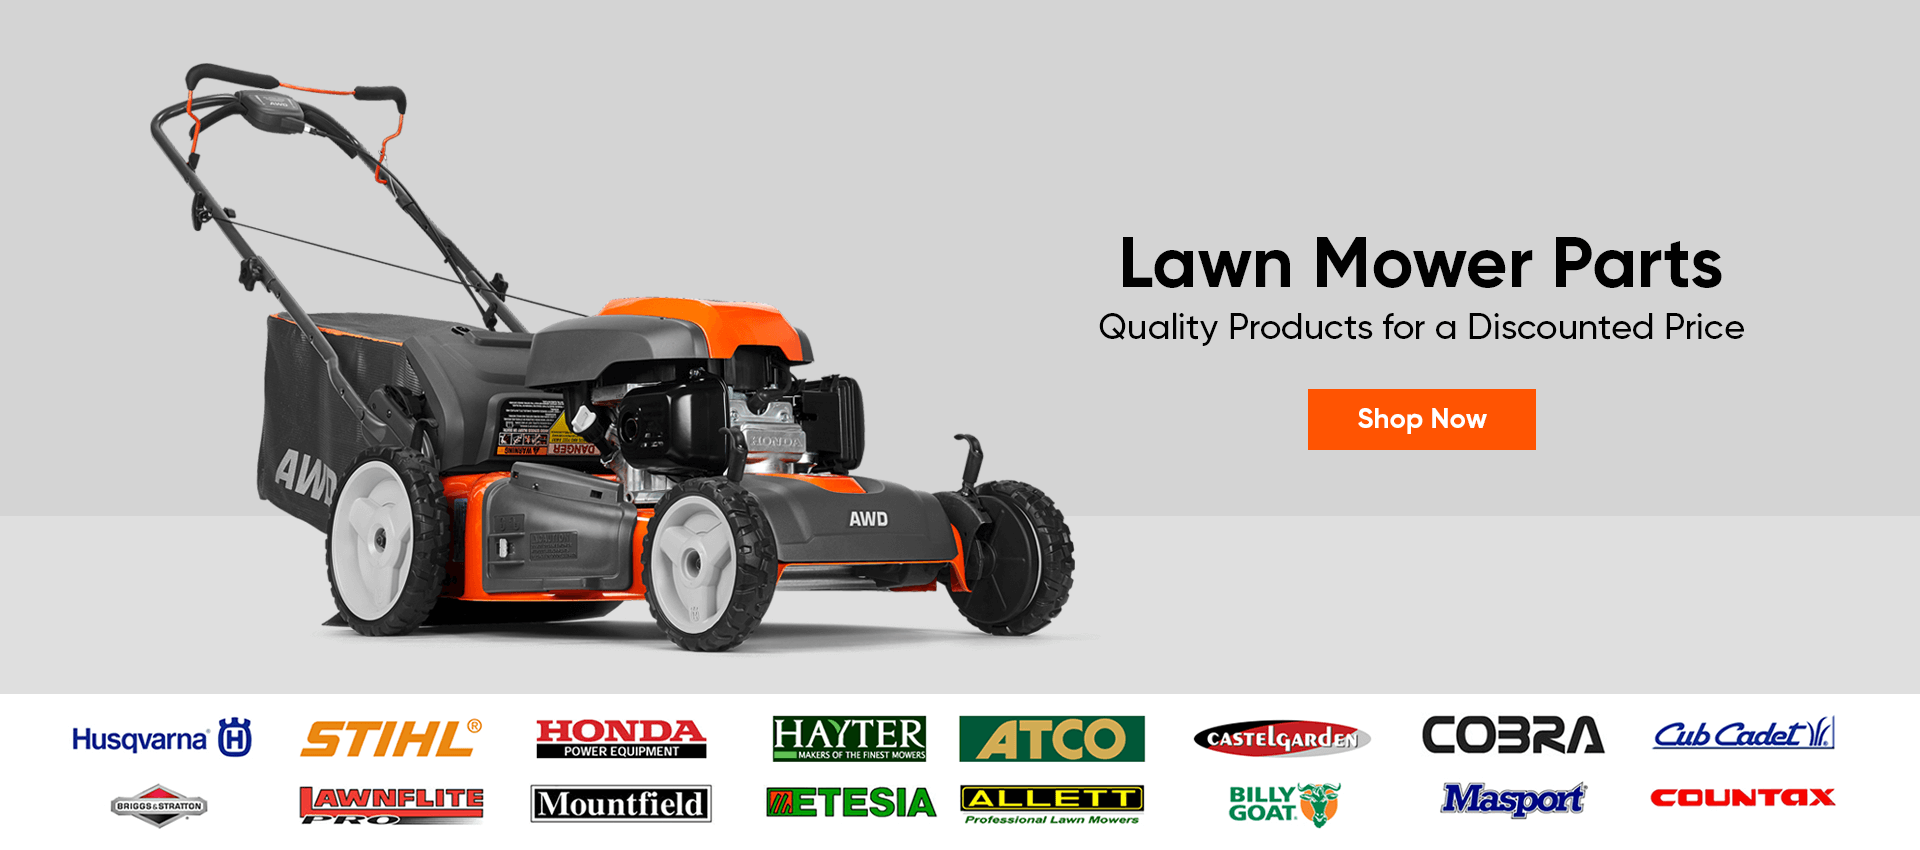 Lawn Mower parts banner